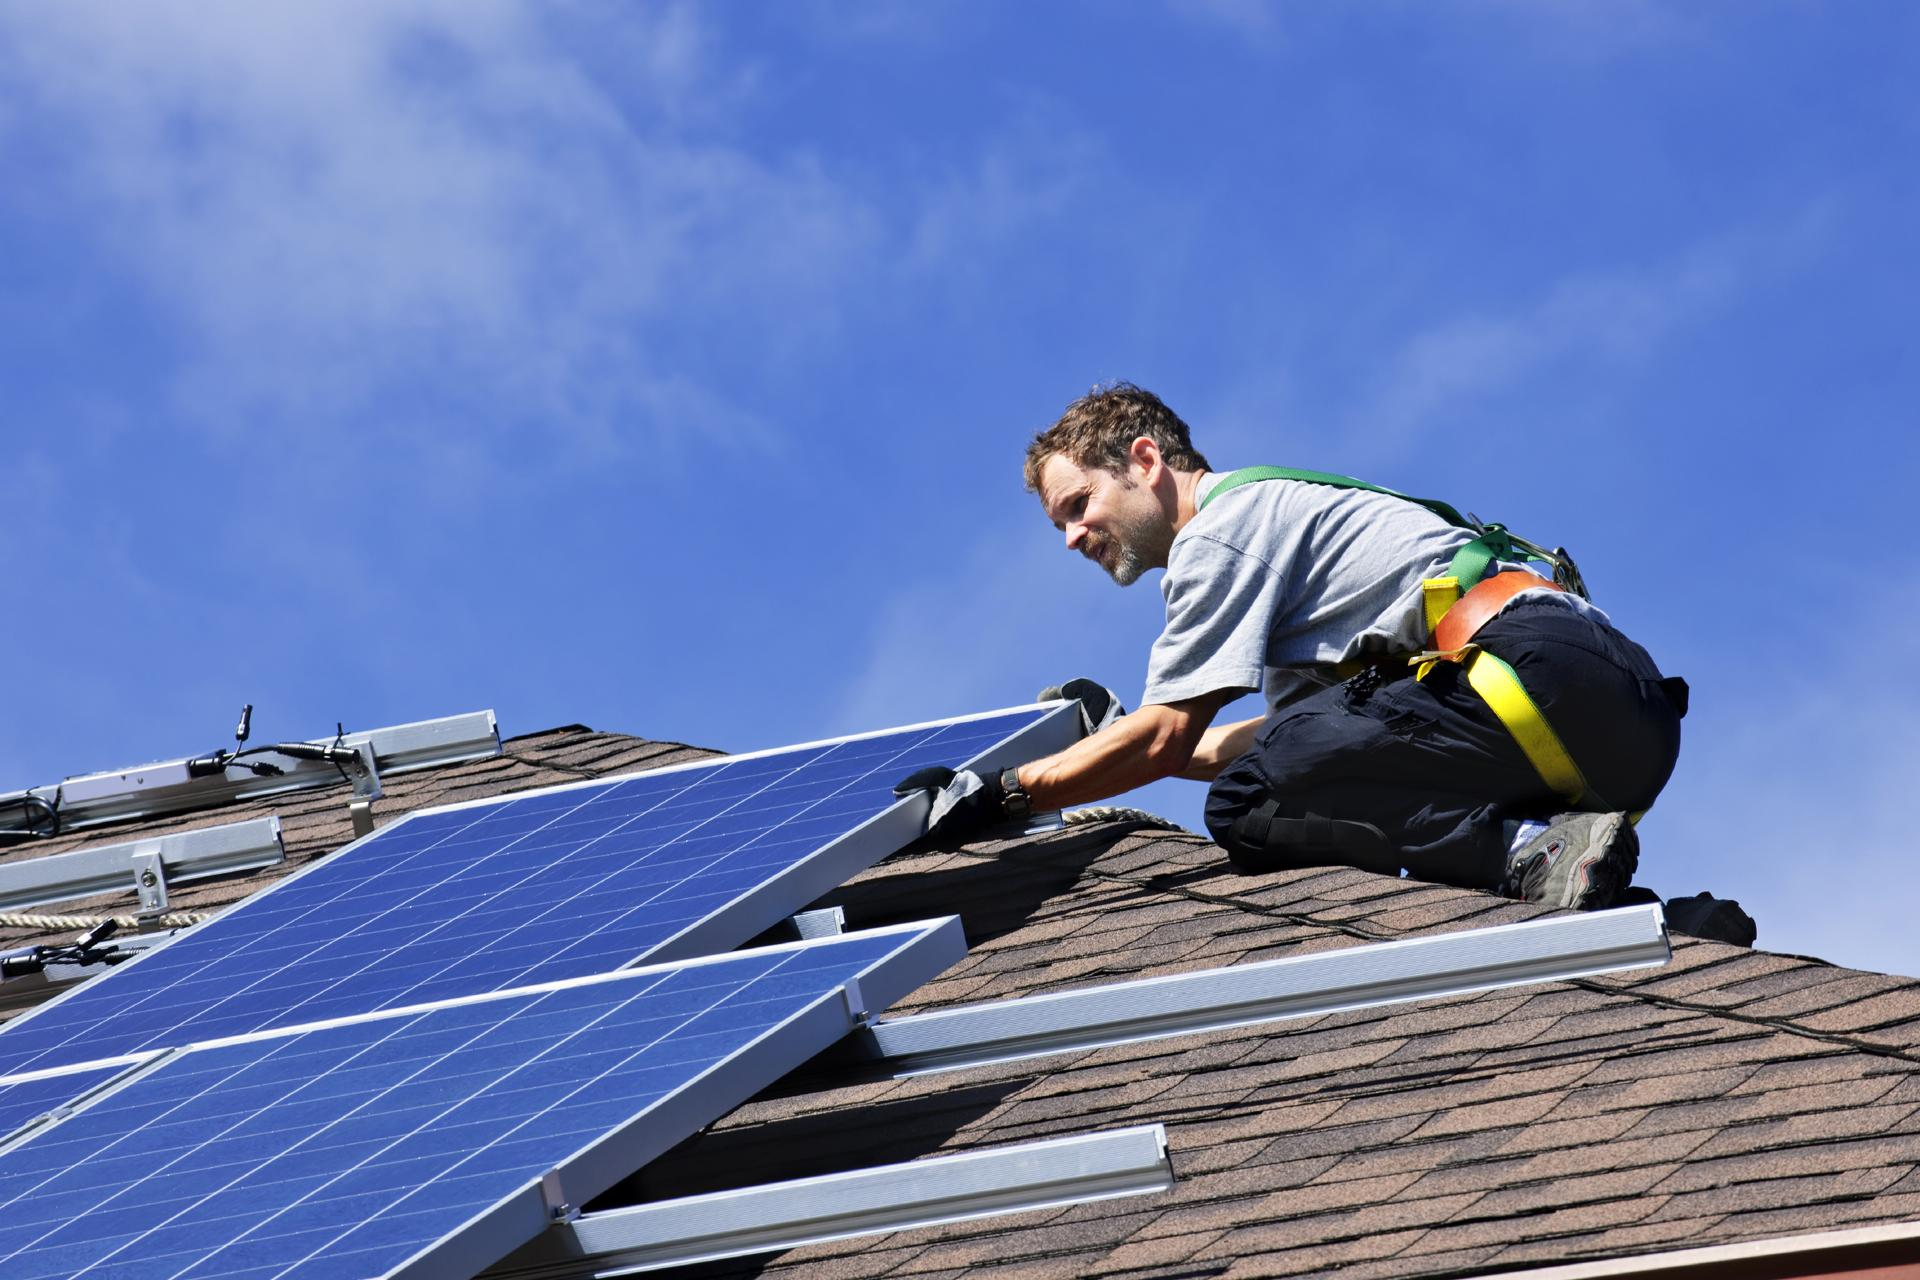 Solar Installers - Find Solar Energy Installation Companies